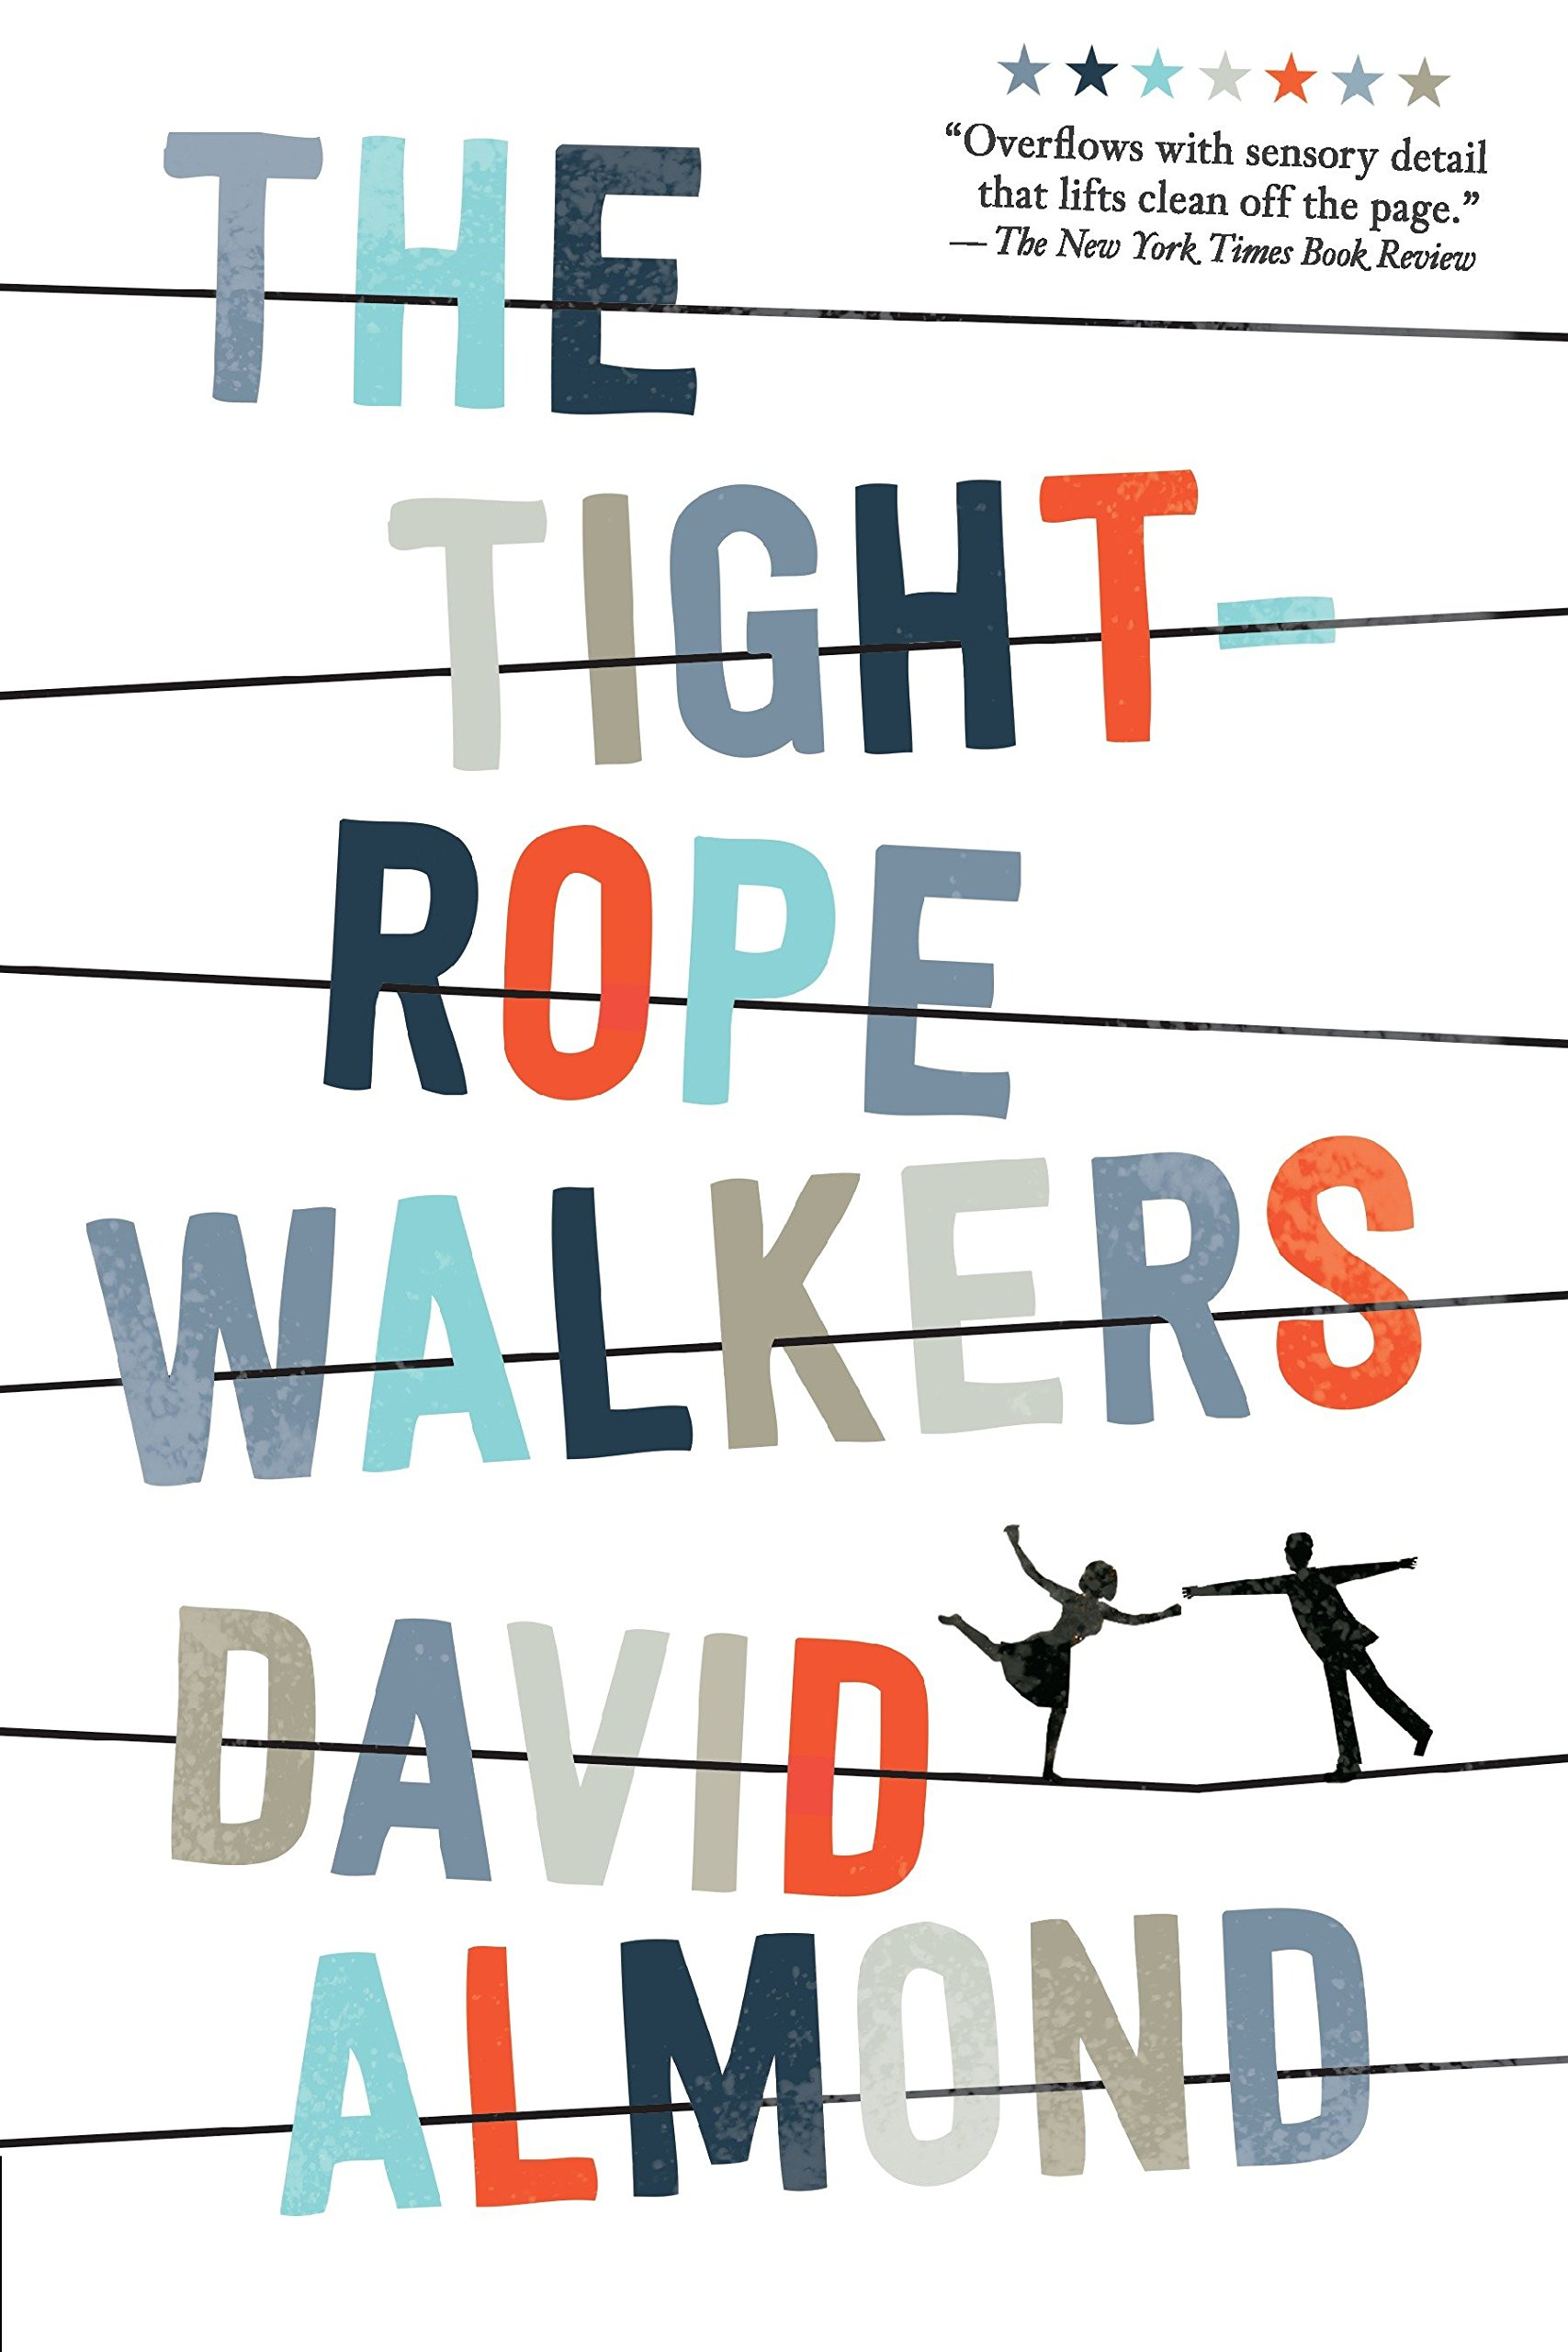 Amazon.com: The Tightrope Walkers (9780763691042): David Almond: Books